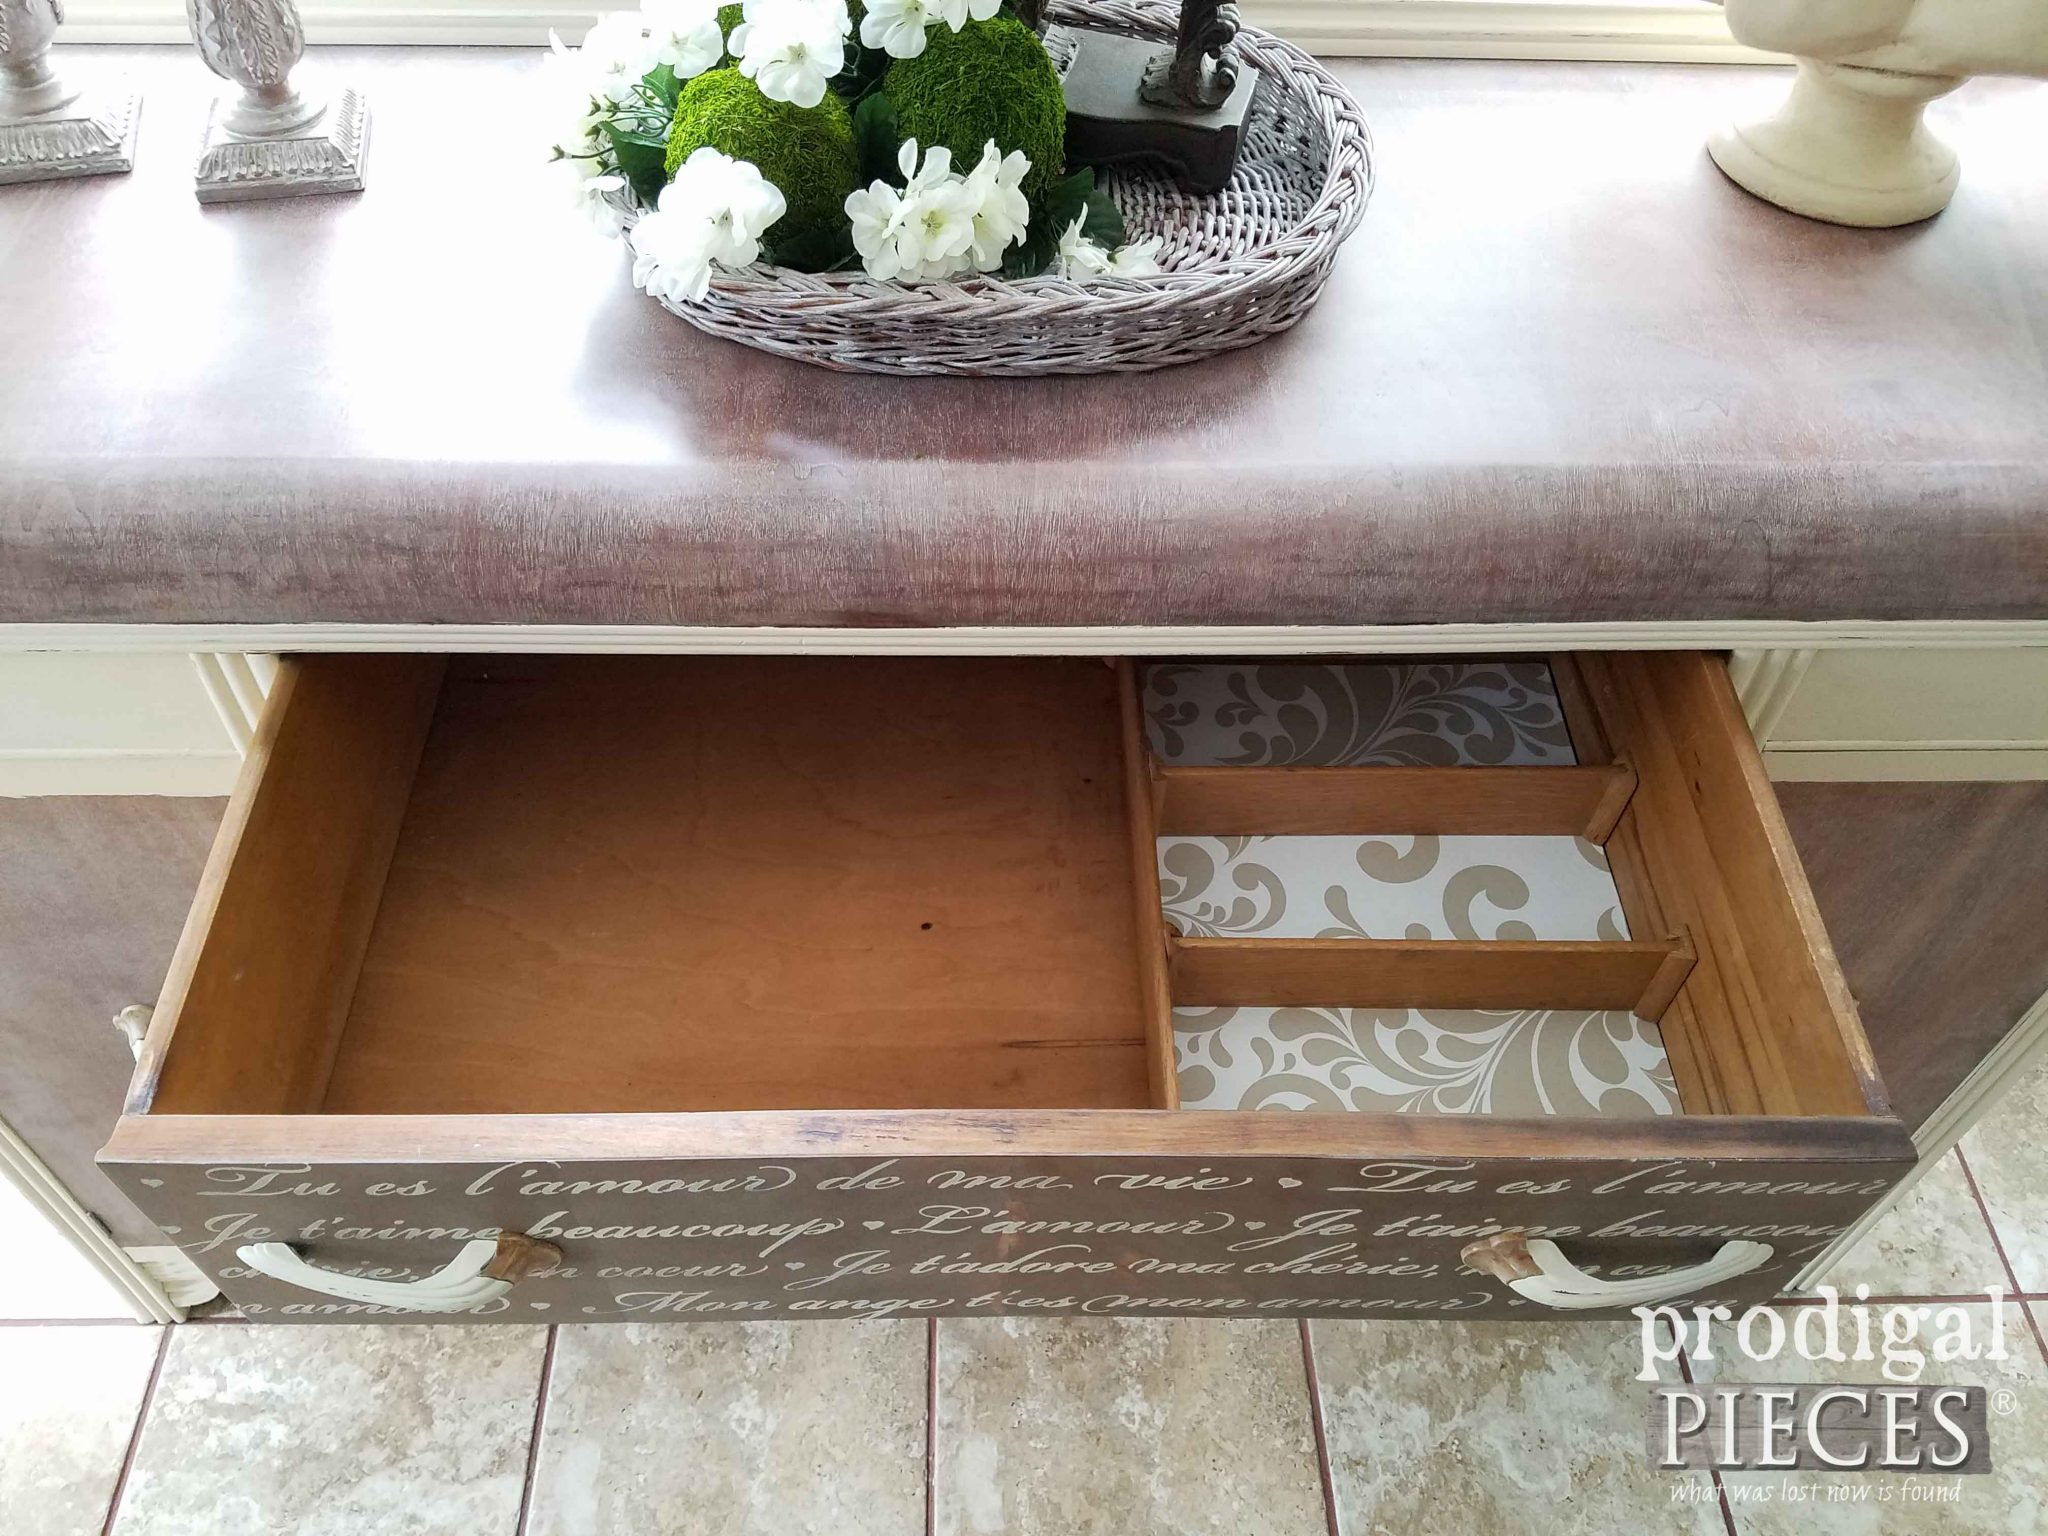 Inside Vintage Art Deco Buffet by Prodigal Pieces | prodigalpieces.com